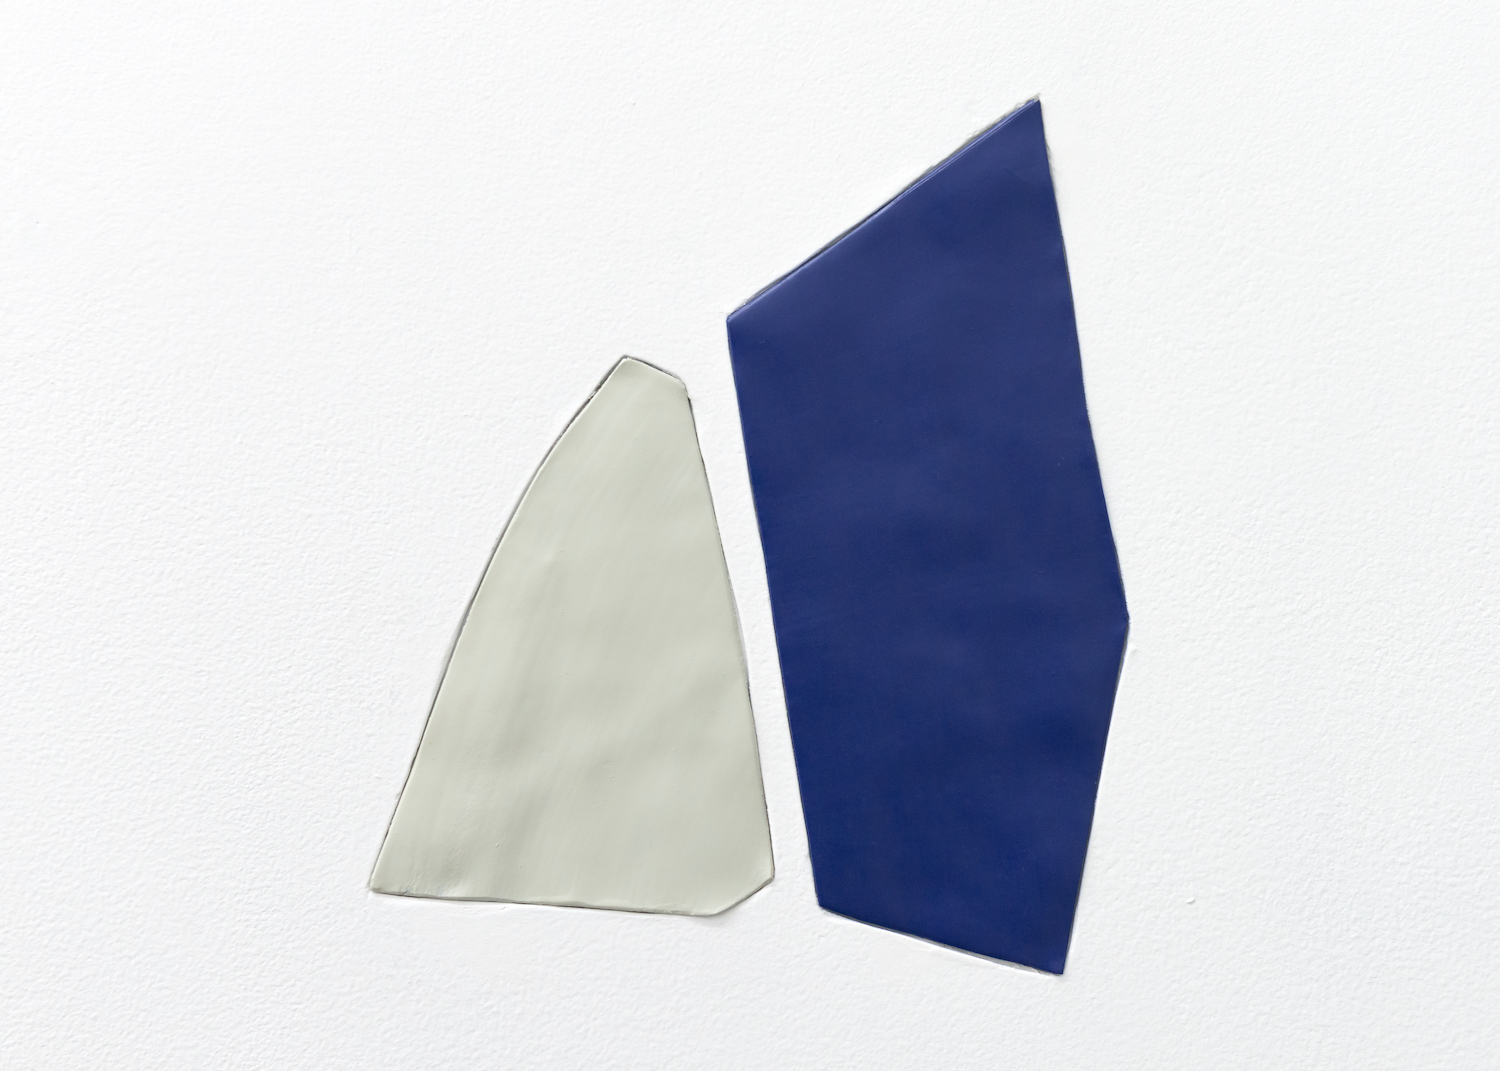 Nancy Brooks Brody  Merce and Scotty  2014 Oil enamel on lead embeded into wall 9 ½h x 8w in NBB002